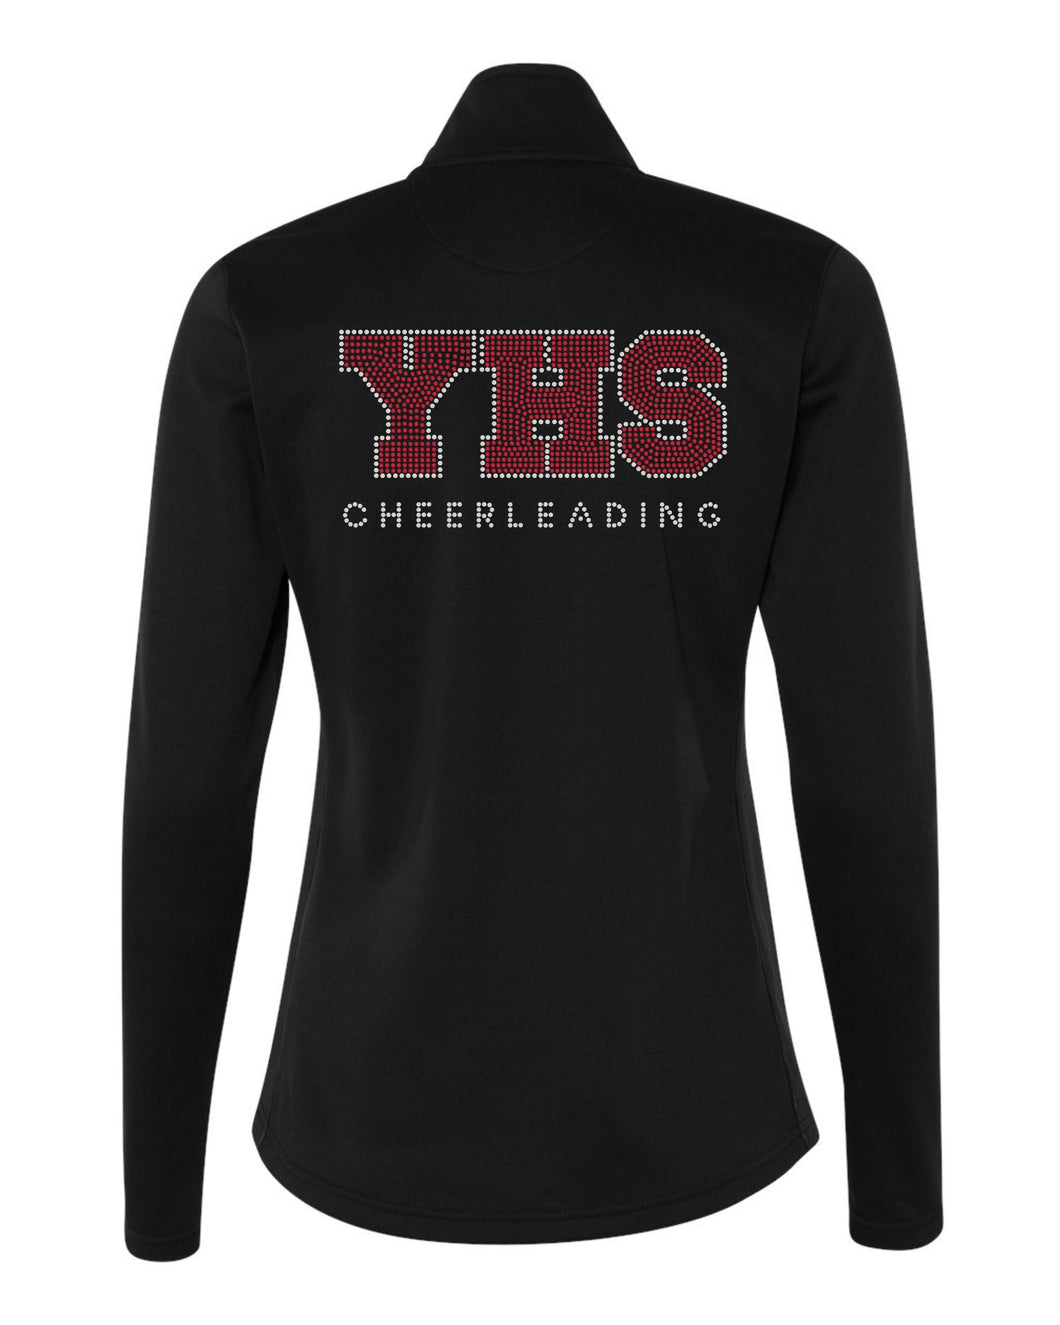 Custom Order Cheer Gear - Black Jackets with Rhinestone Design